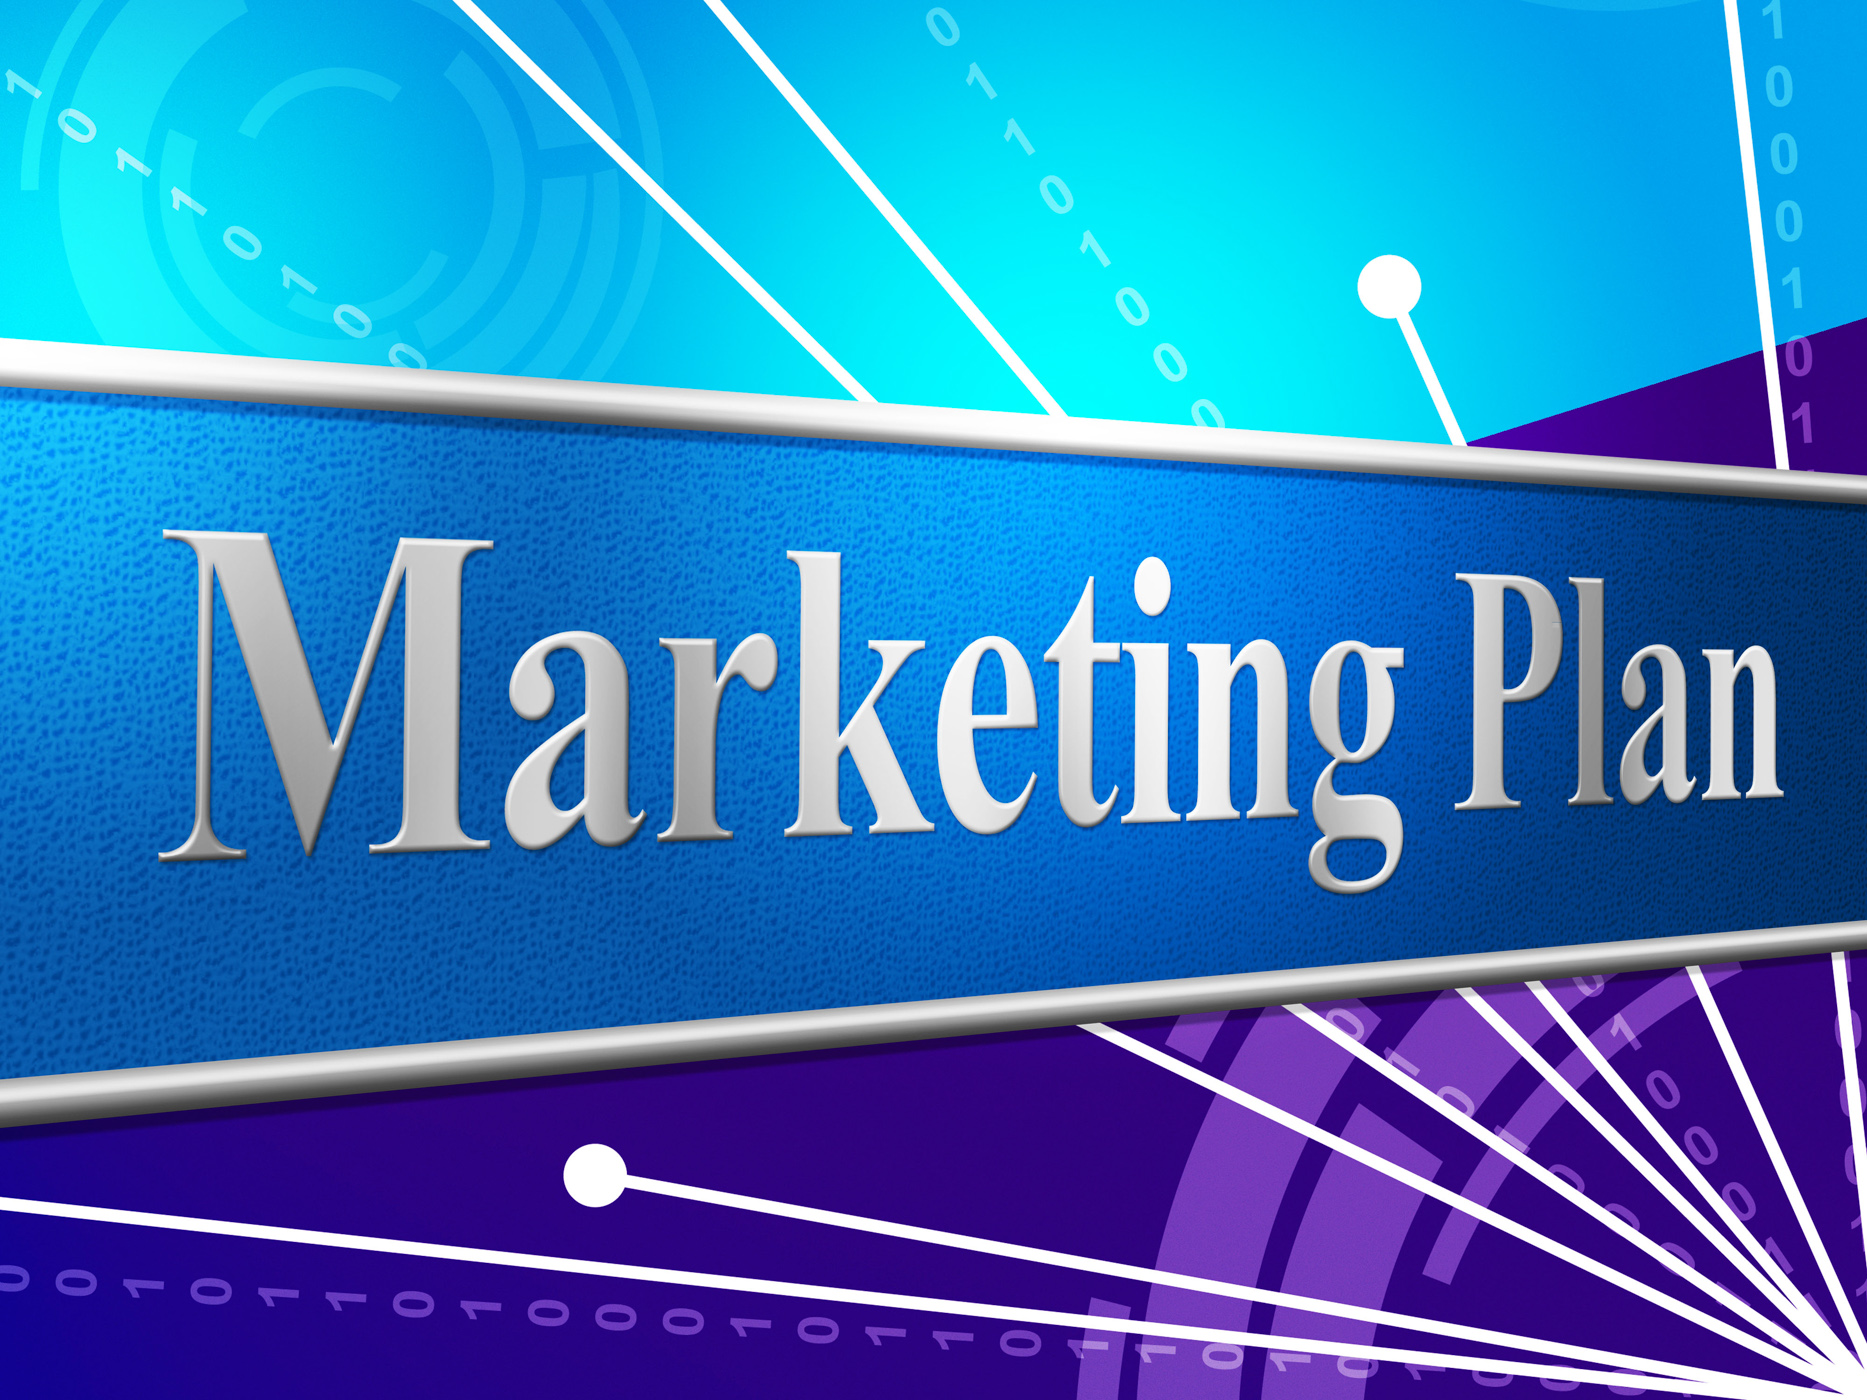 Marketing Plan Indicates Idea Sales And Scheme, Advertising, Project, Suggestion, Strategy, HQ Photo